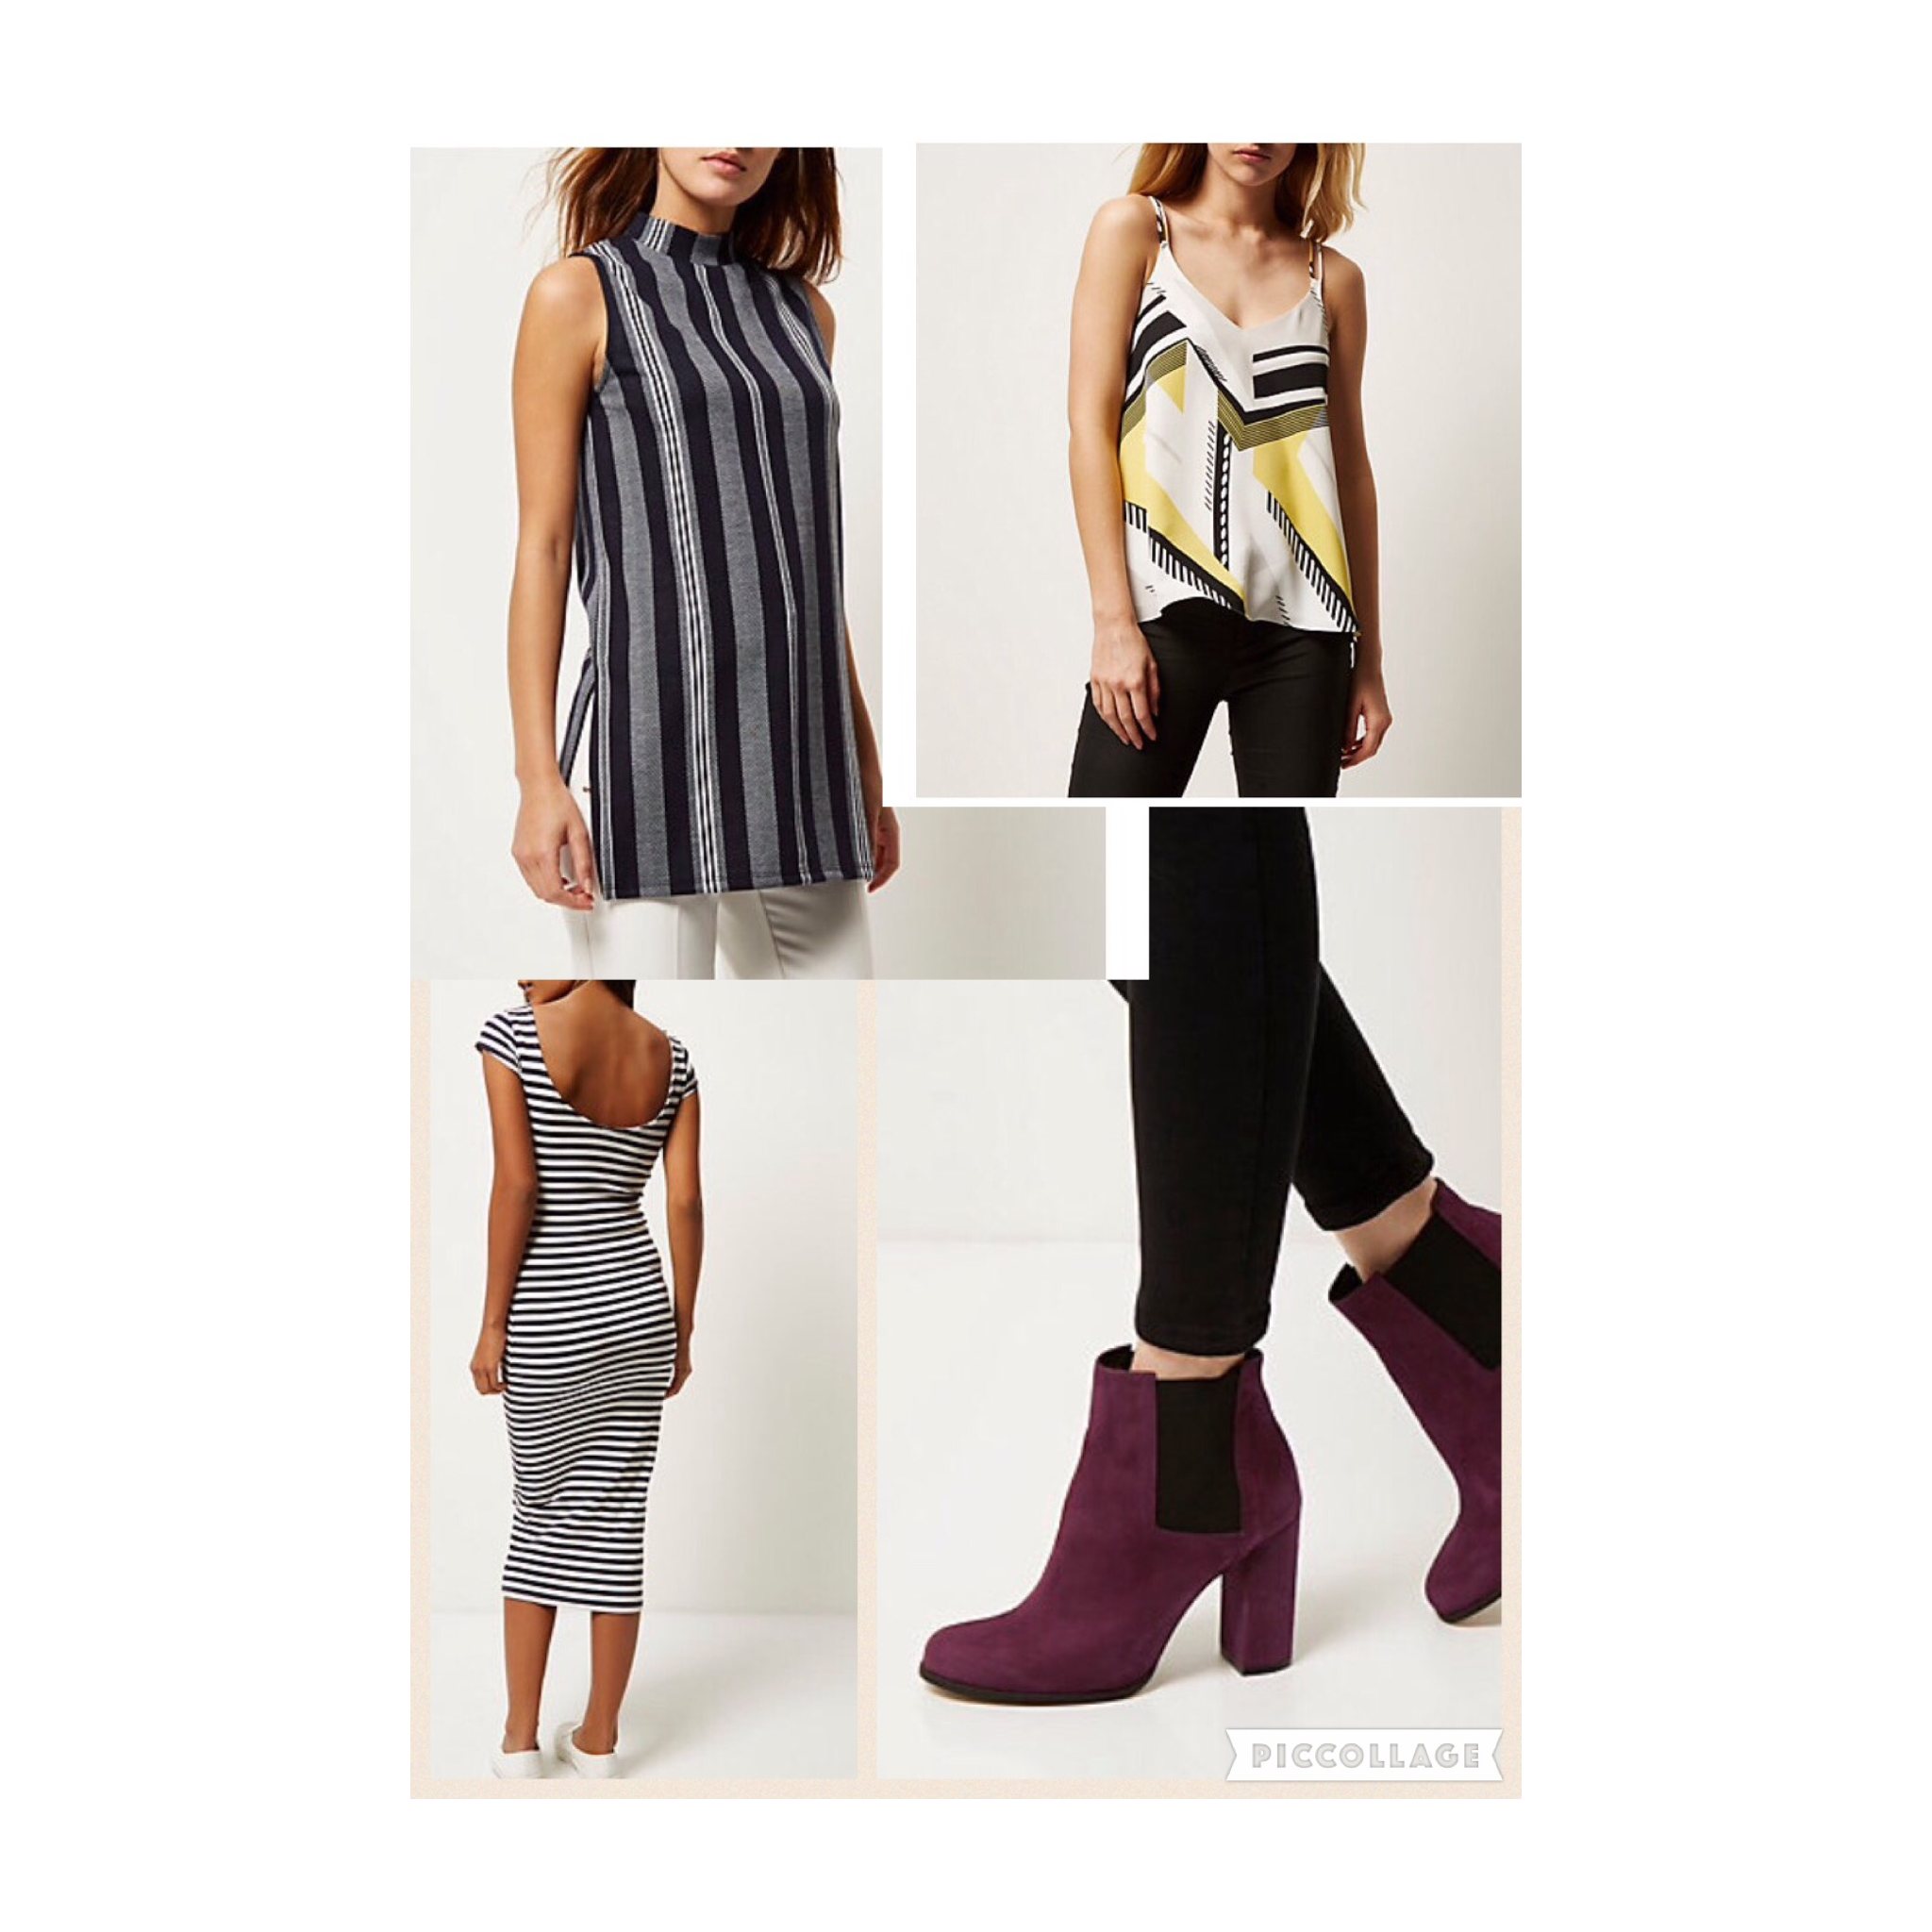 River Island Fashion Fix - Essential Pieces in River Island right now